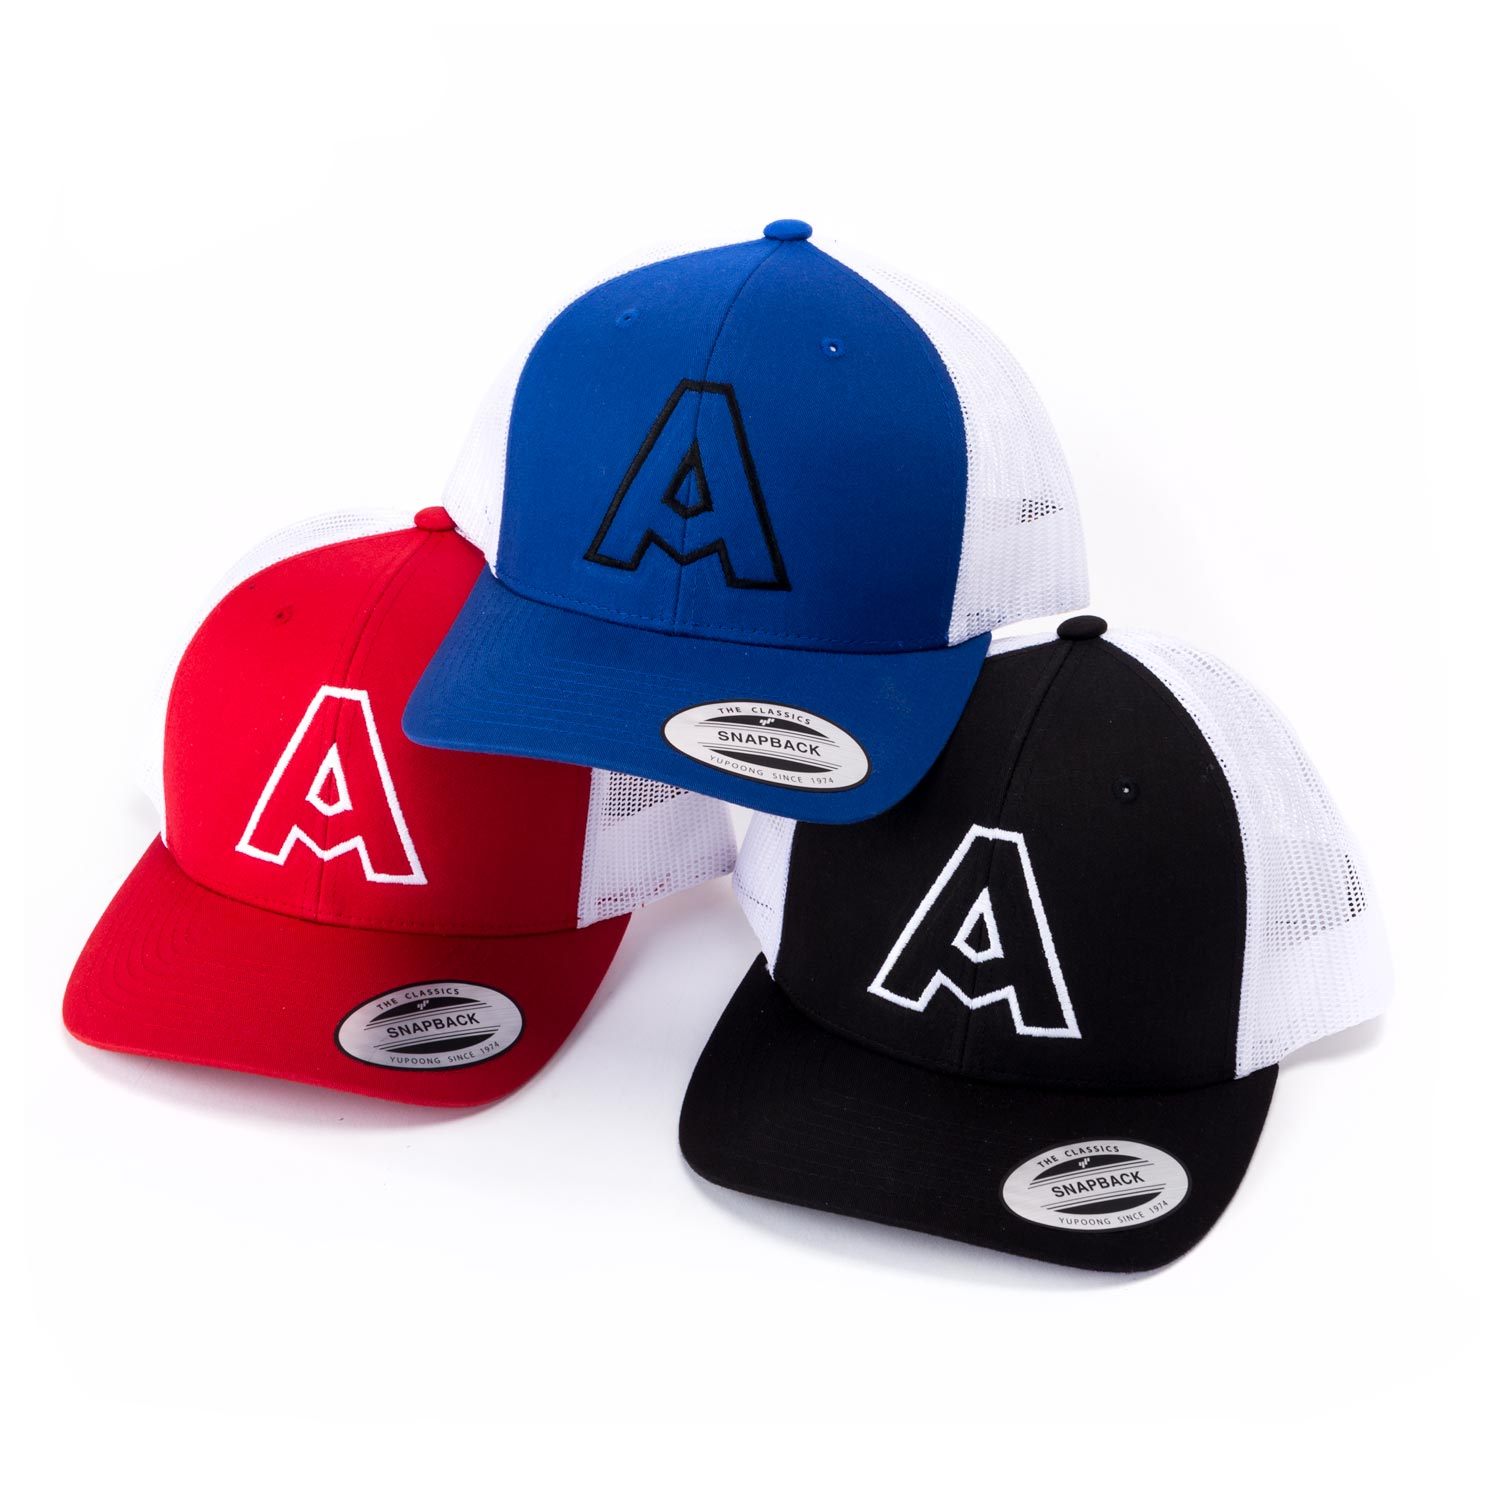 Embroidered Yupoong Snapback Trucker Caps